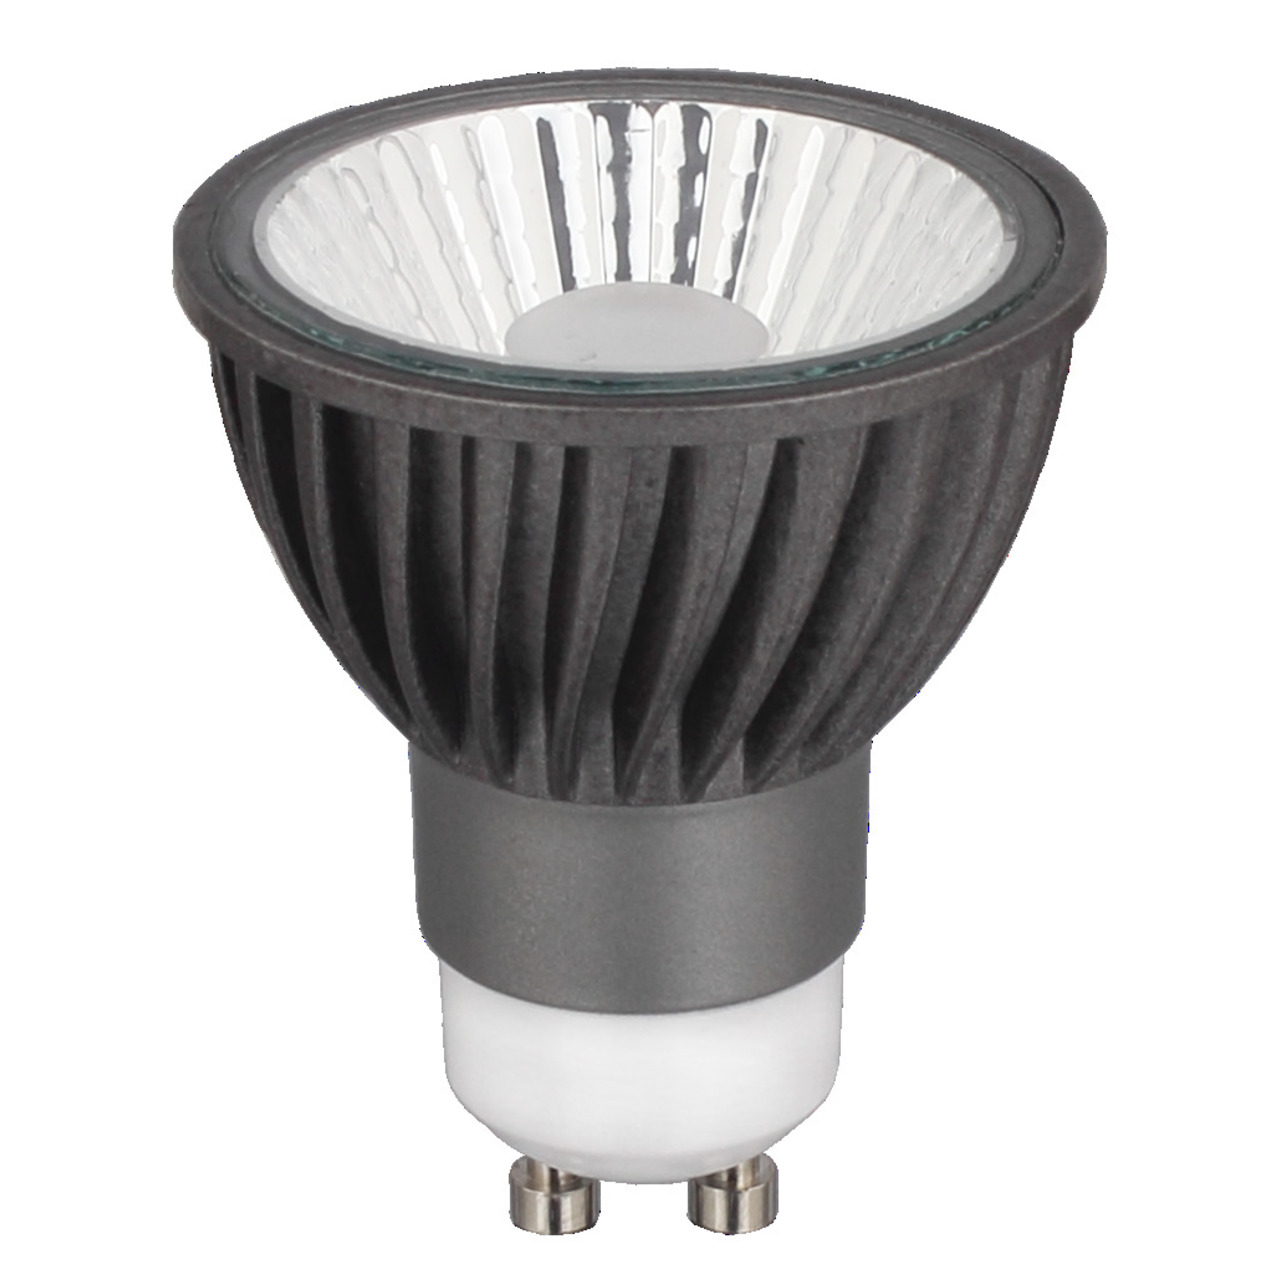 CV-Lighting HALED III 9-W-GU10-LED-Lampe- warmweiund-223 - dimmbar- 36und-176